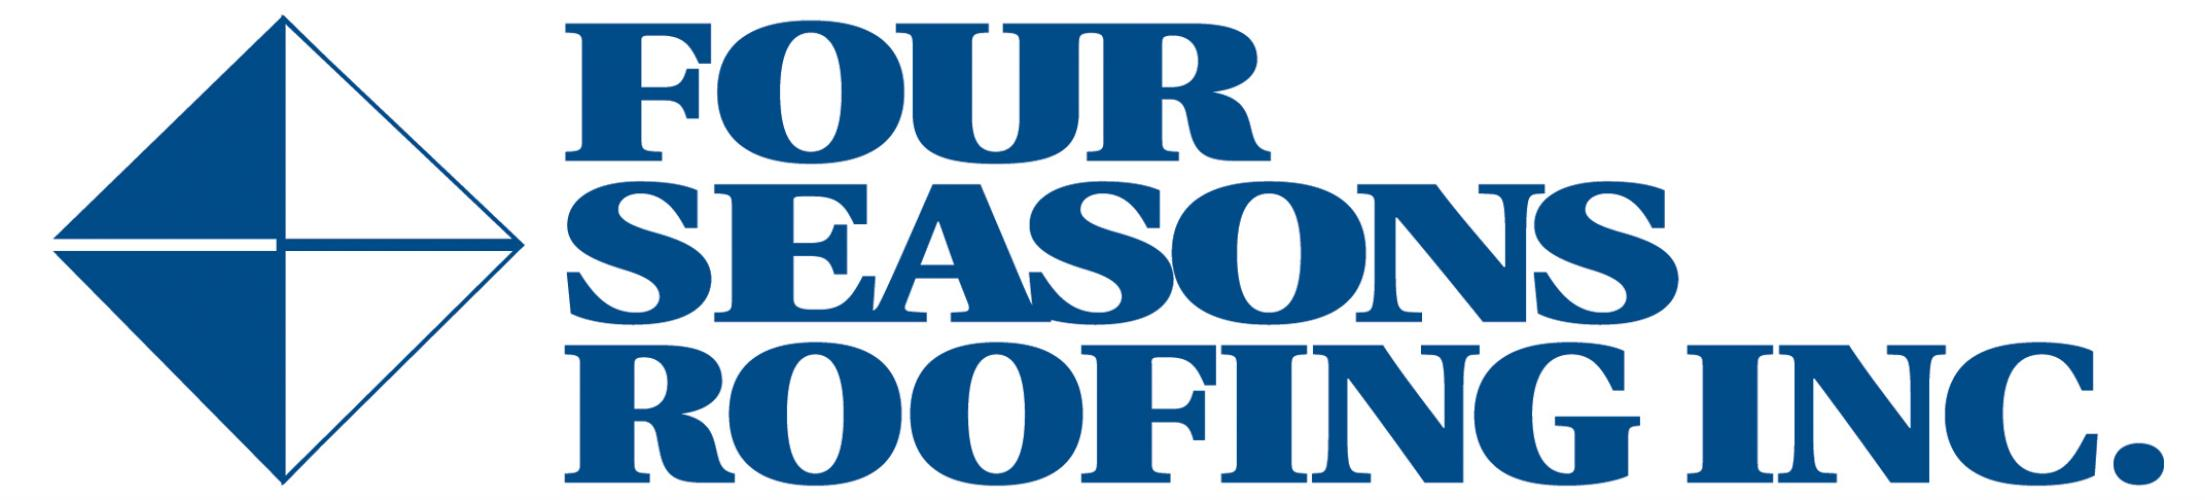 Four Seasons Roofing